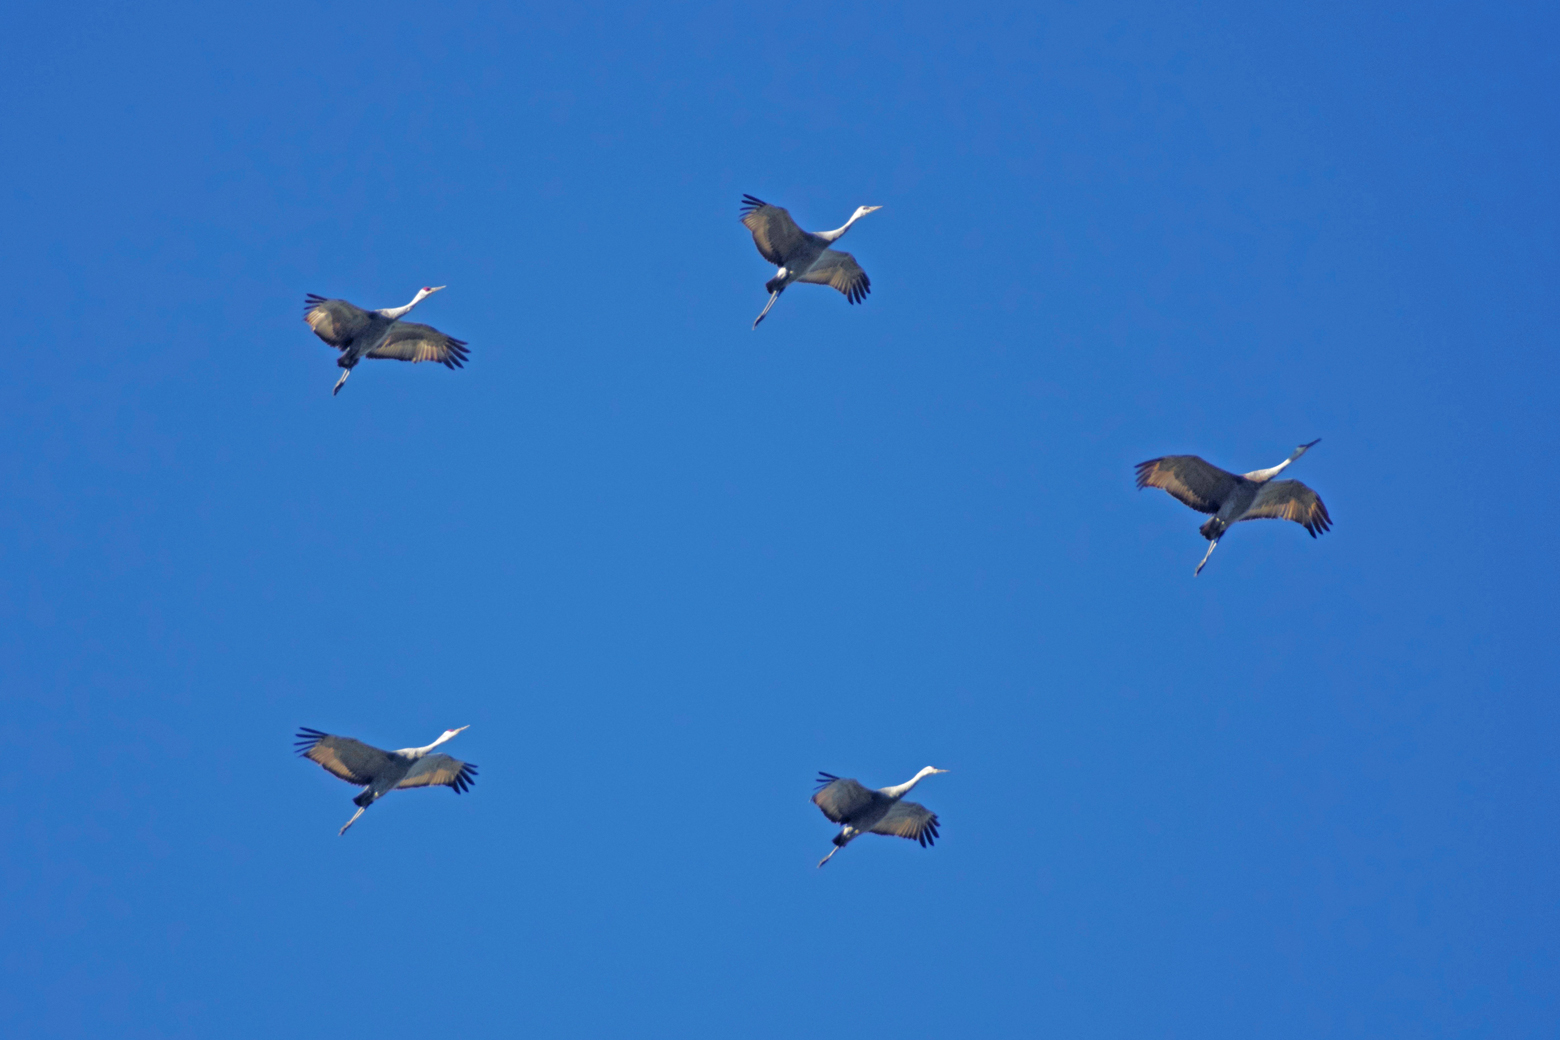 Five sandhill cranes in a pentagon formation in the sky at Ridgefield NWR